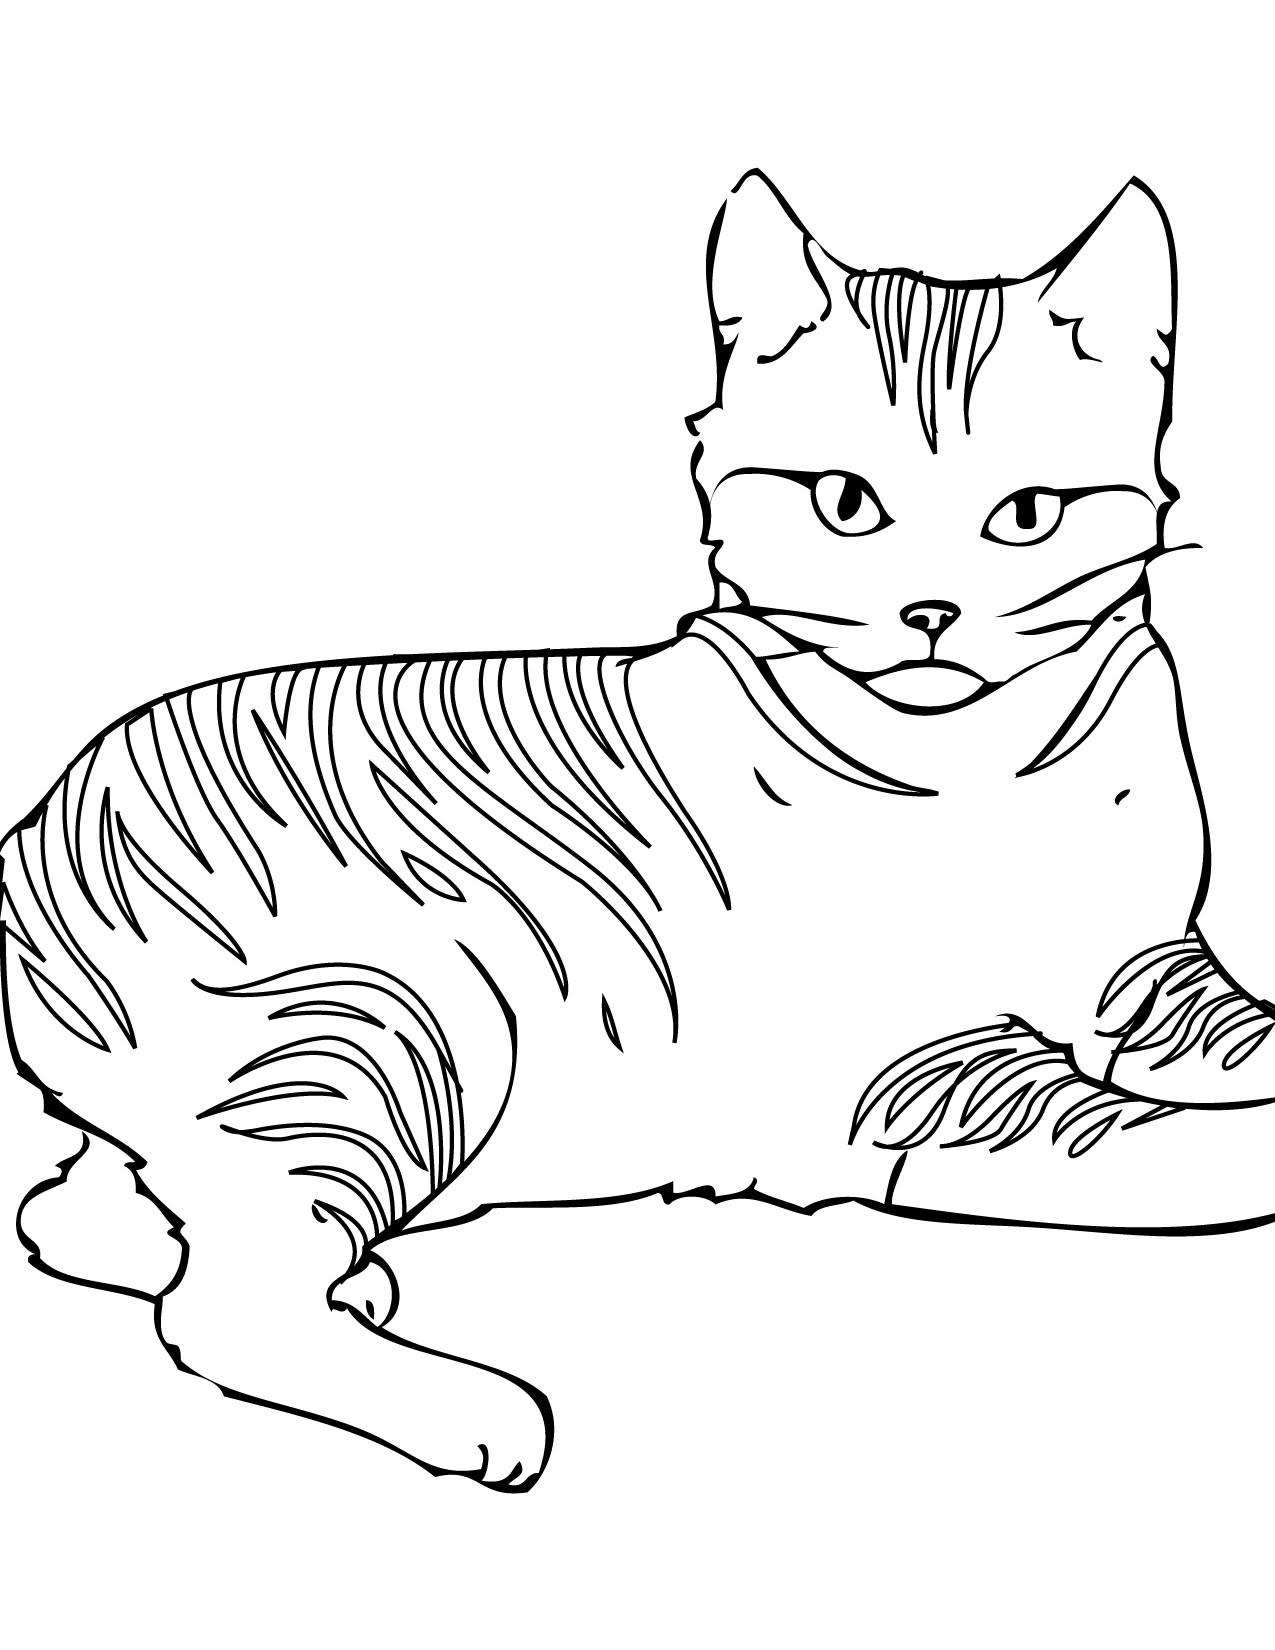 1275x1650 Free Printable Cat Coloring Pages For Kids Warrior Cats Picloud